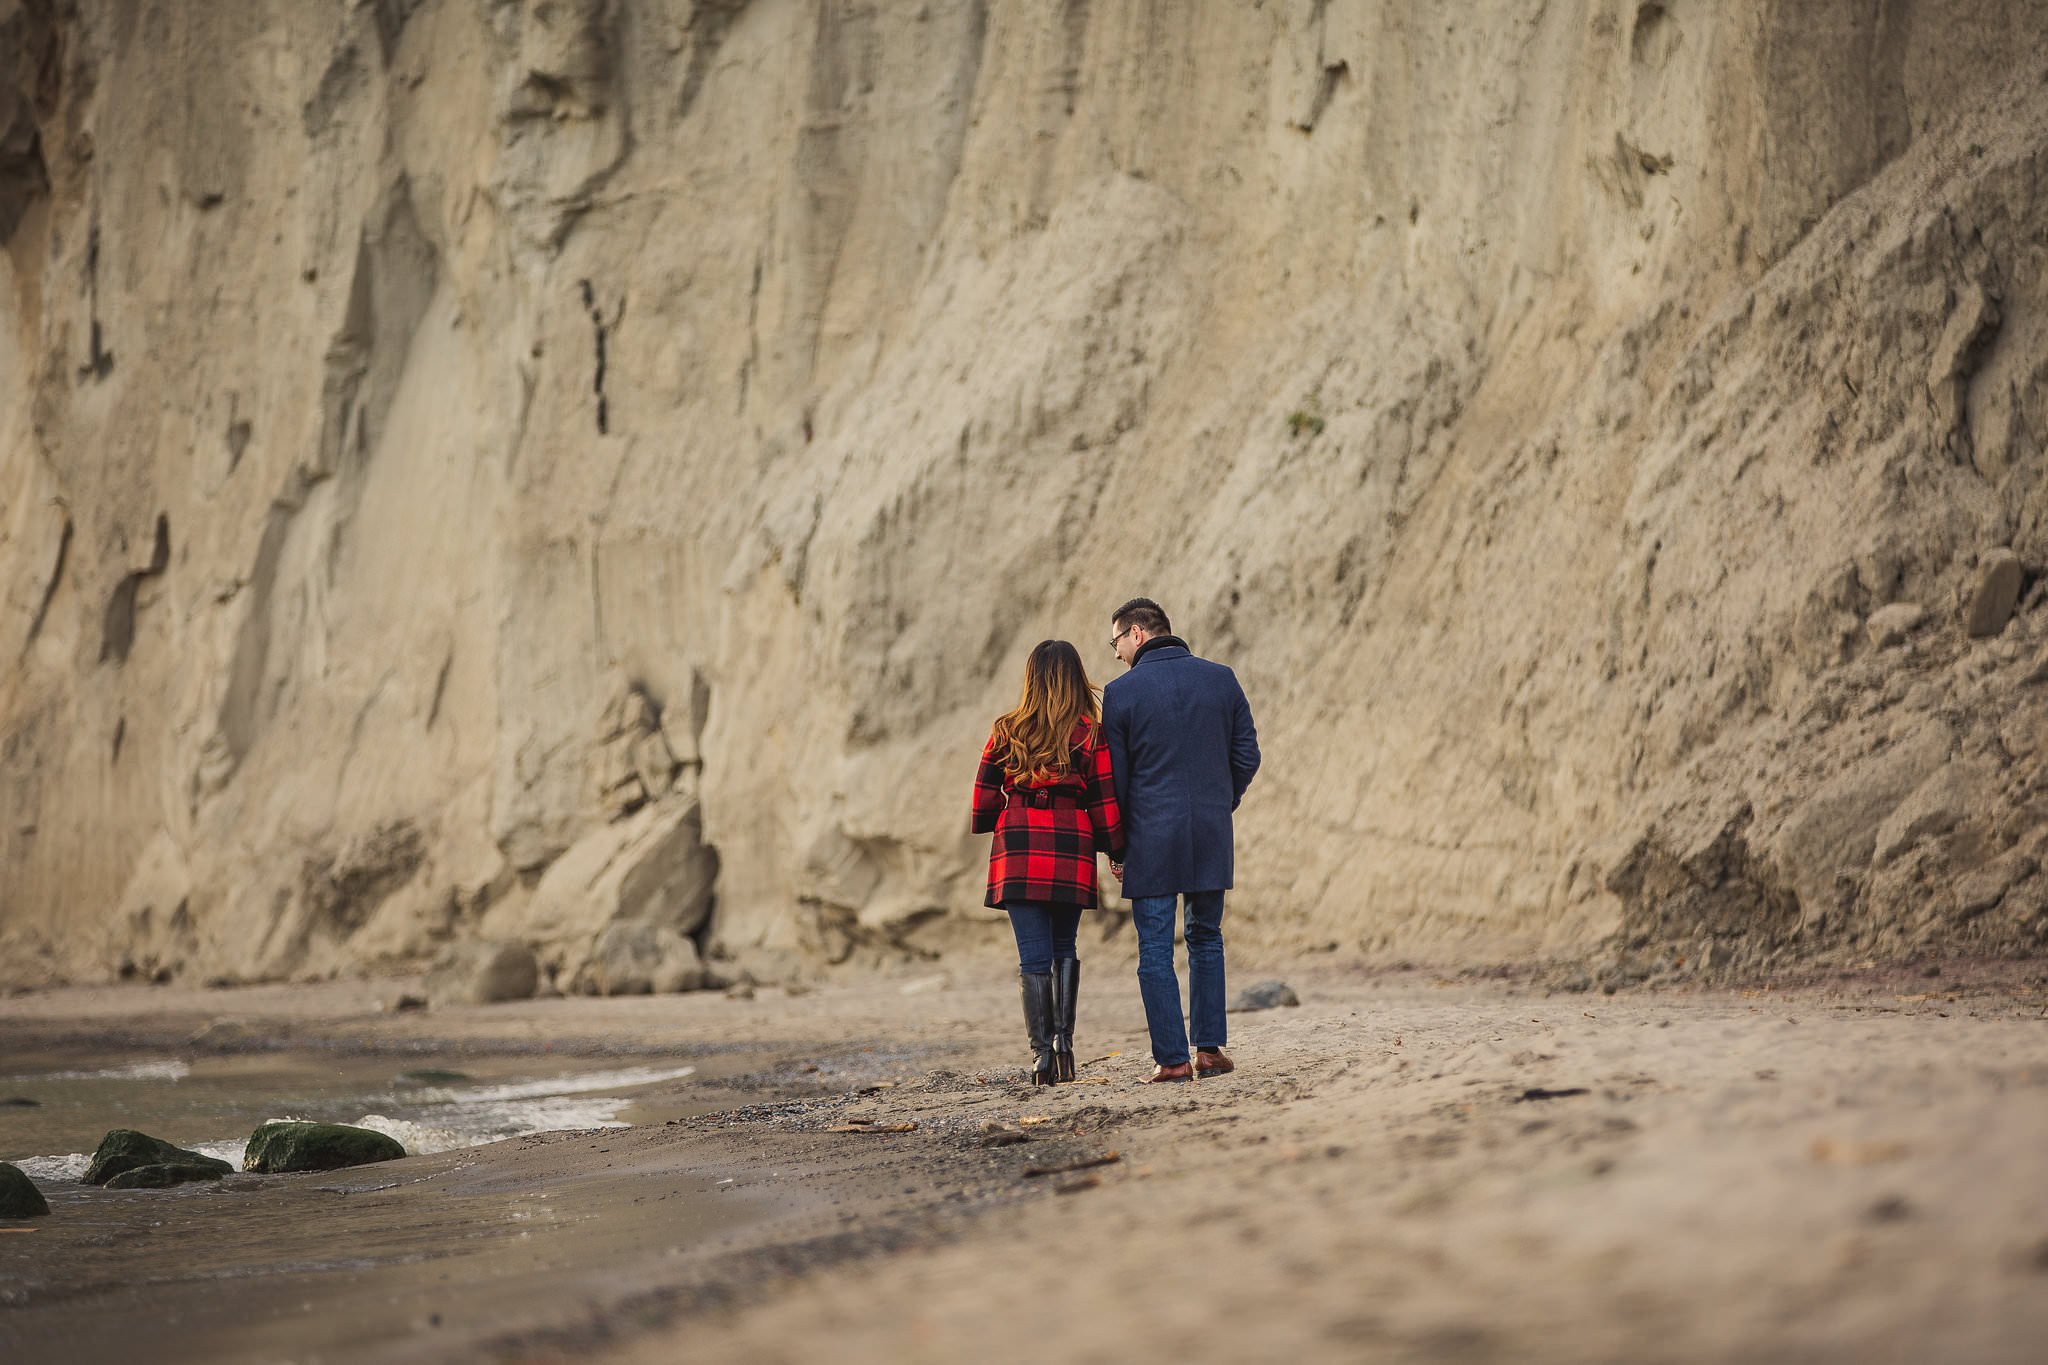 scarborough bluffs engagement photos, fall engagement photos scarborough bluffs, fall engagement photos toronto, engagement photos water toronto